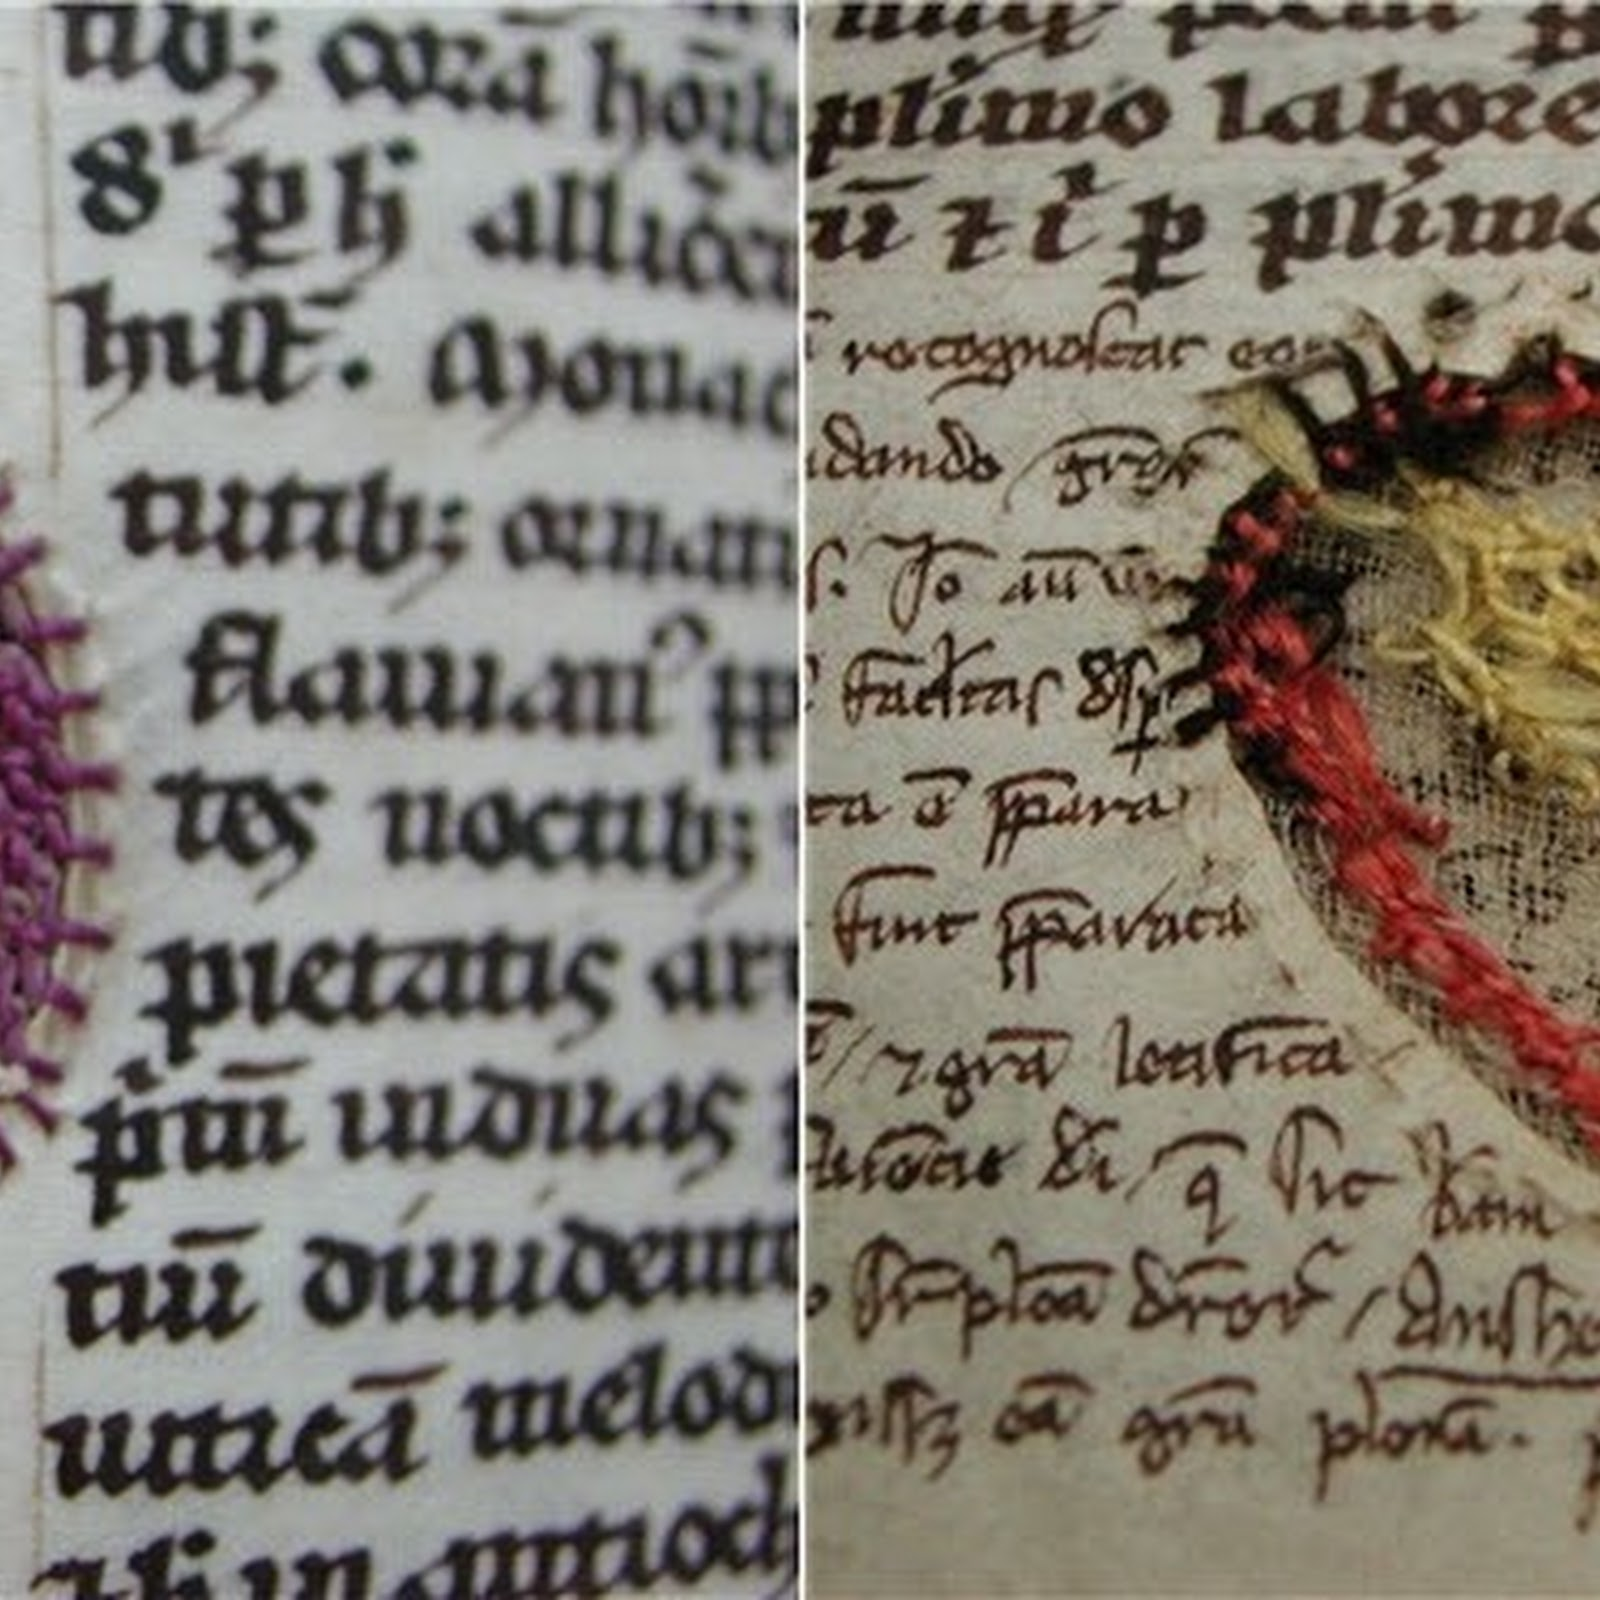 The Art of Mediaeval Book Repairing